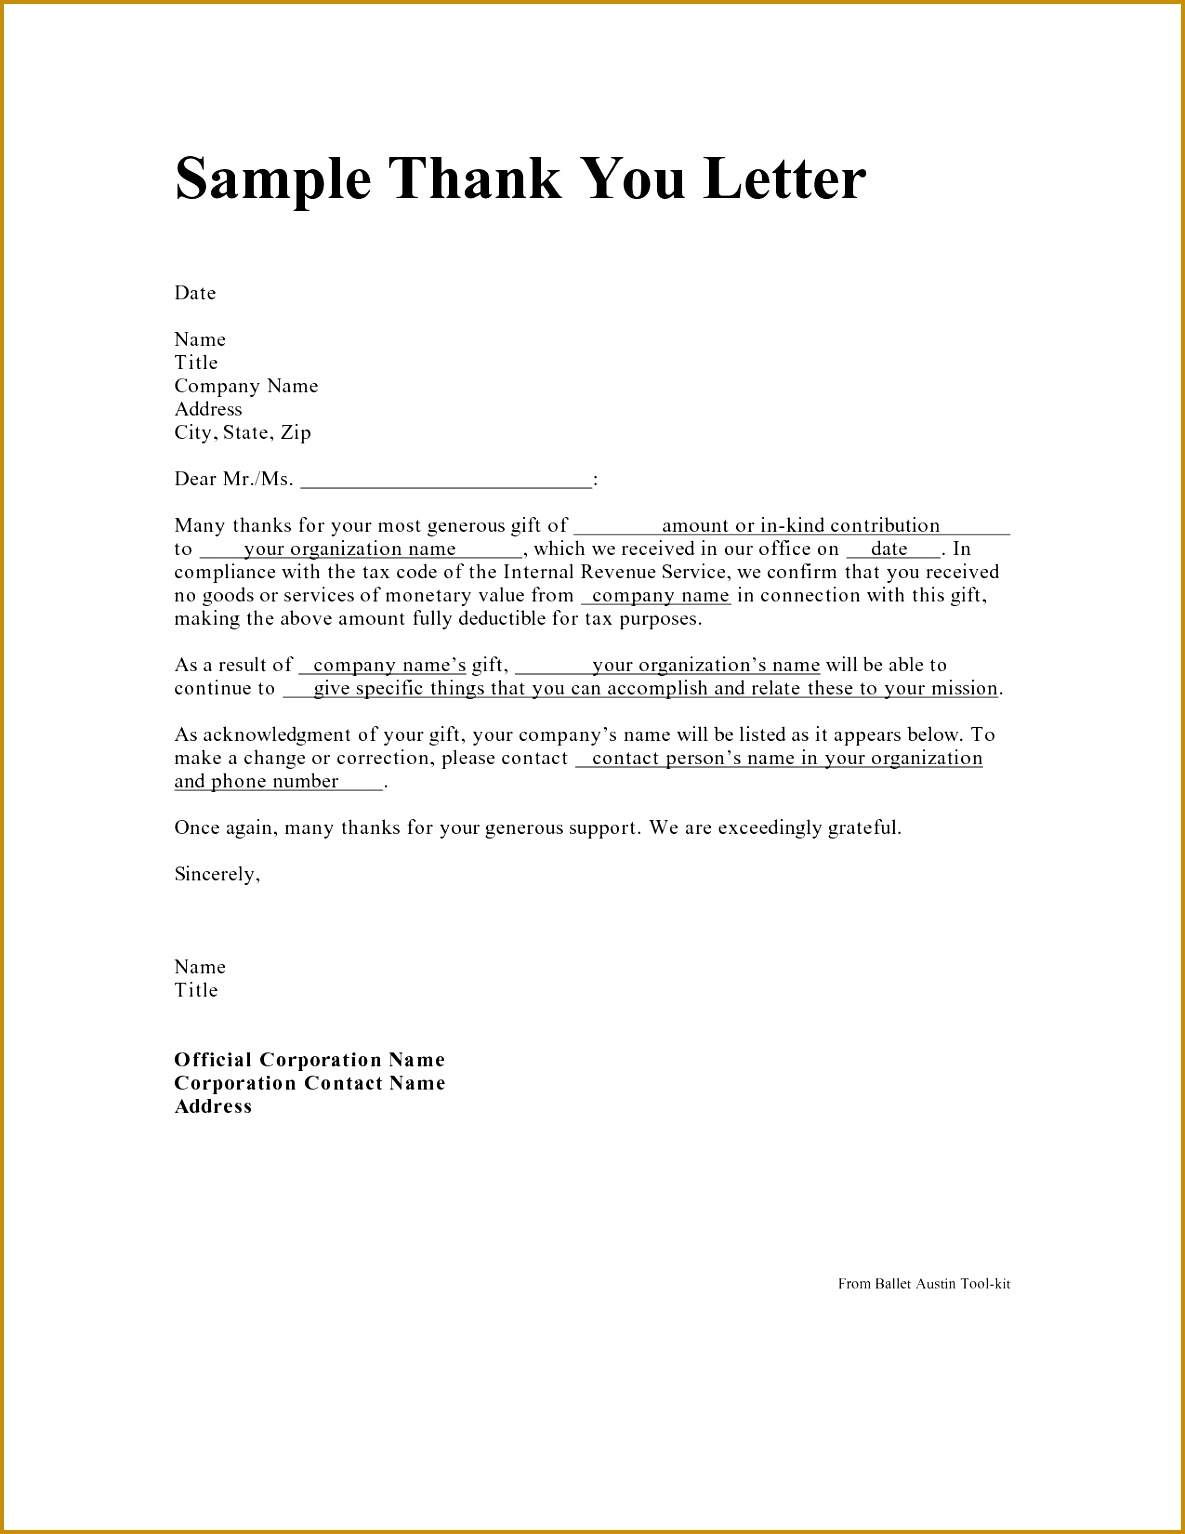 than you letter 15341185